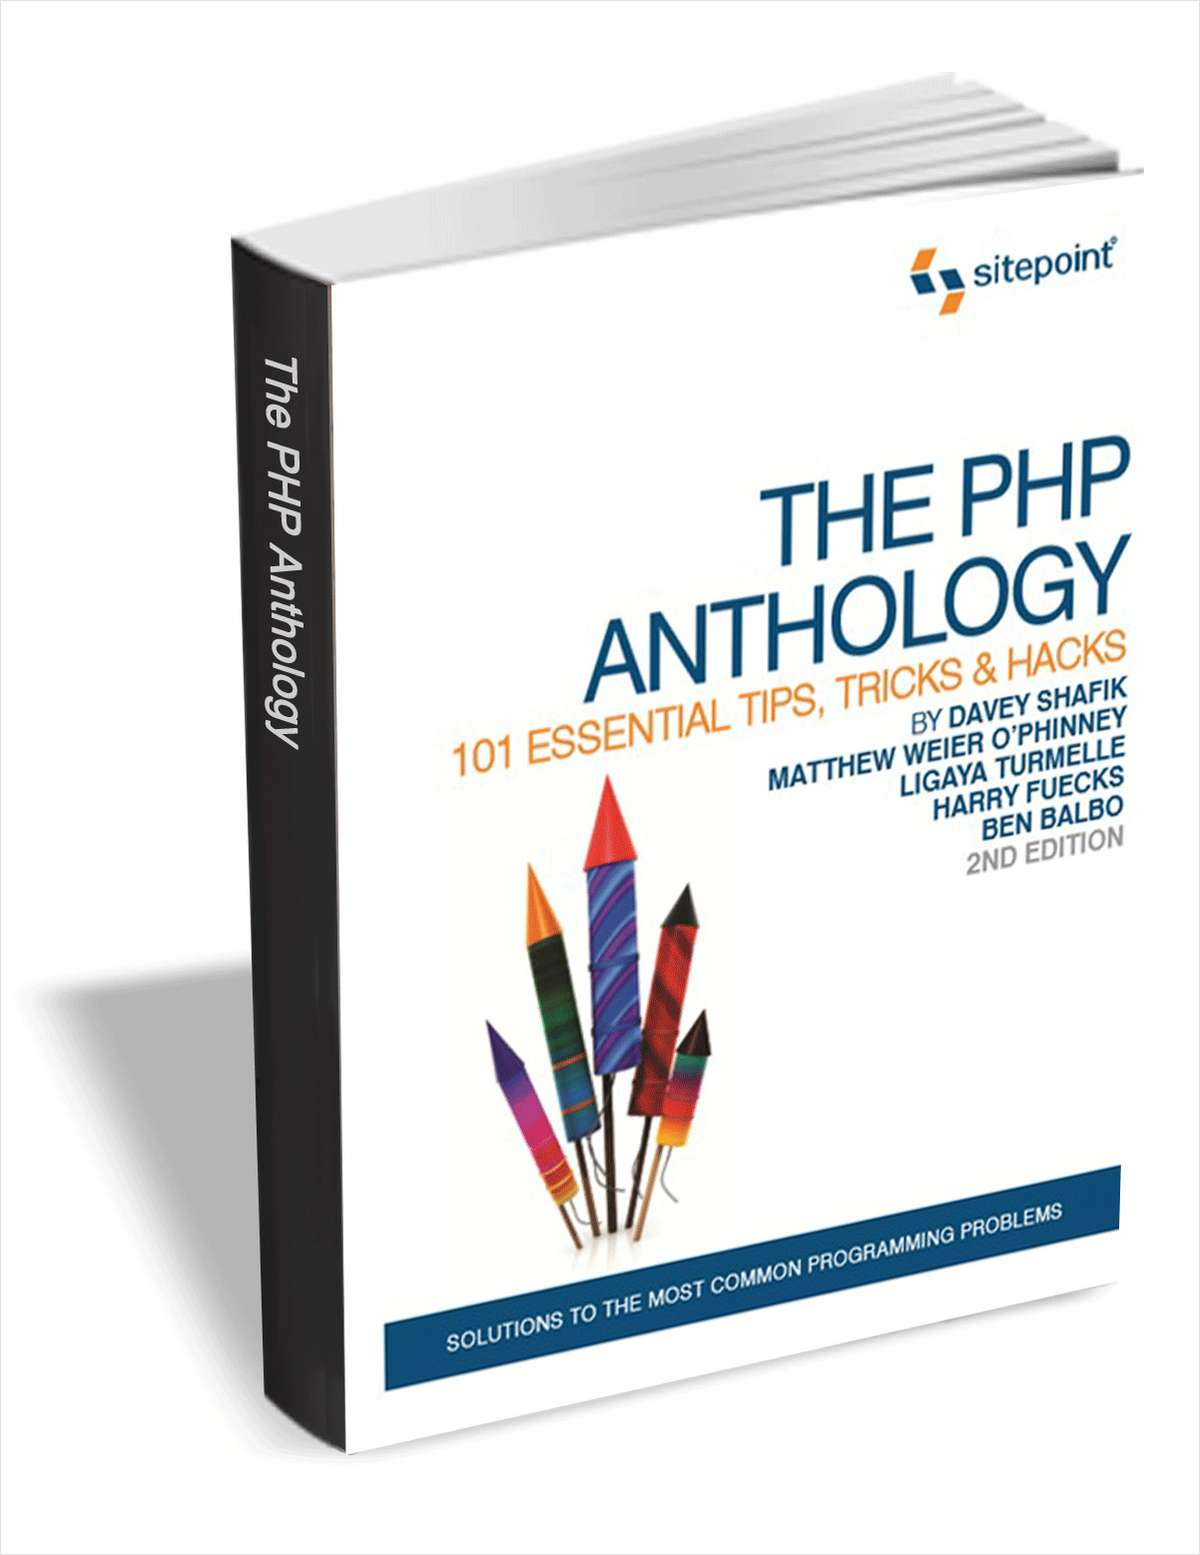 The PHP Anthology -101 Essential Tips, Tricks & Hacks, 2nd Edition